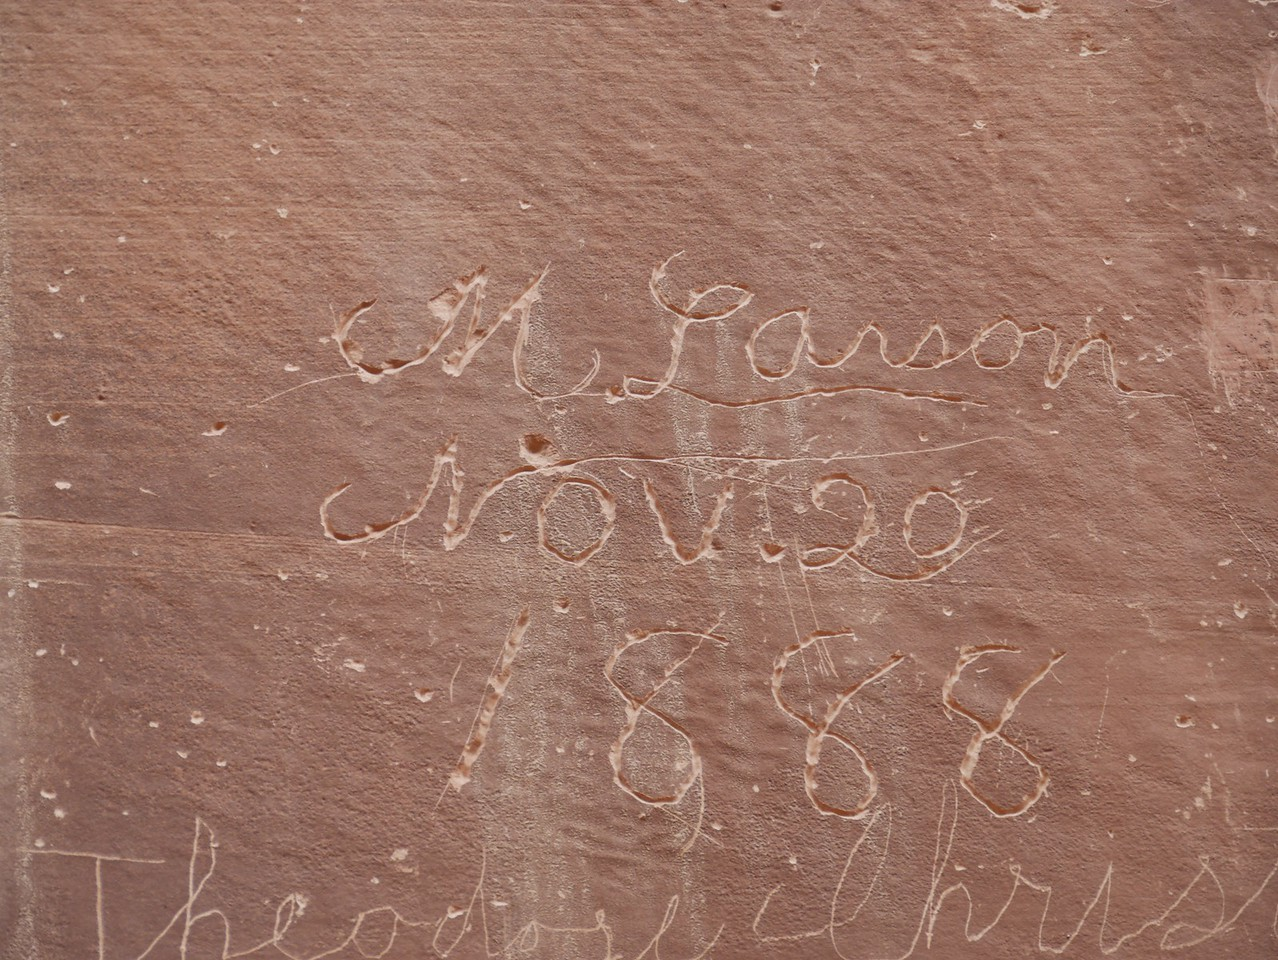 Capitol Gorge hike - Old inscriptions in the canyon.